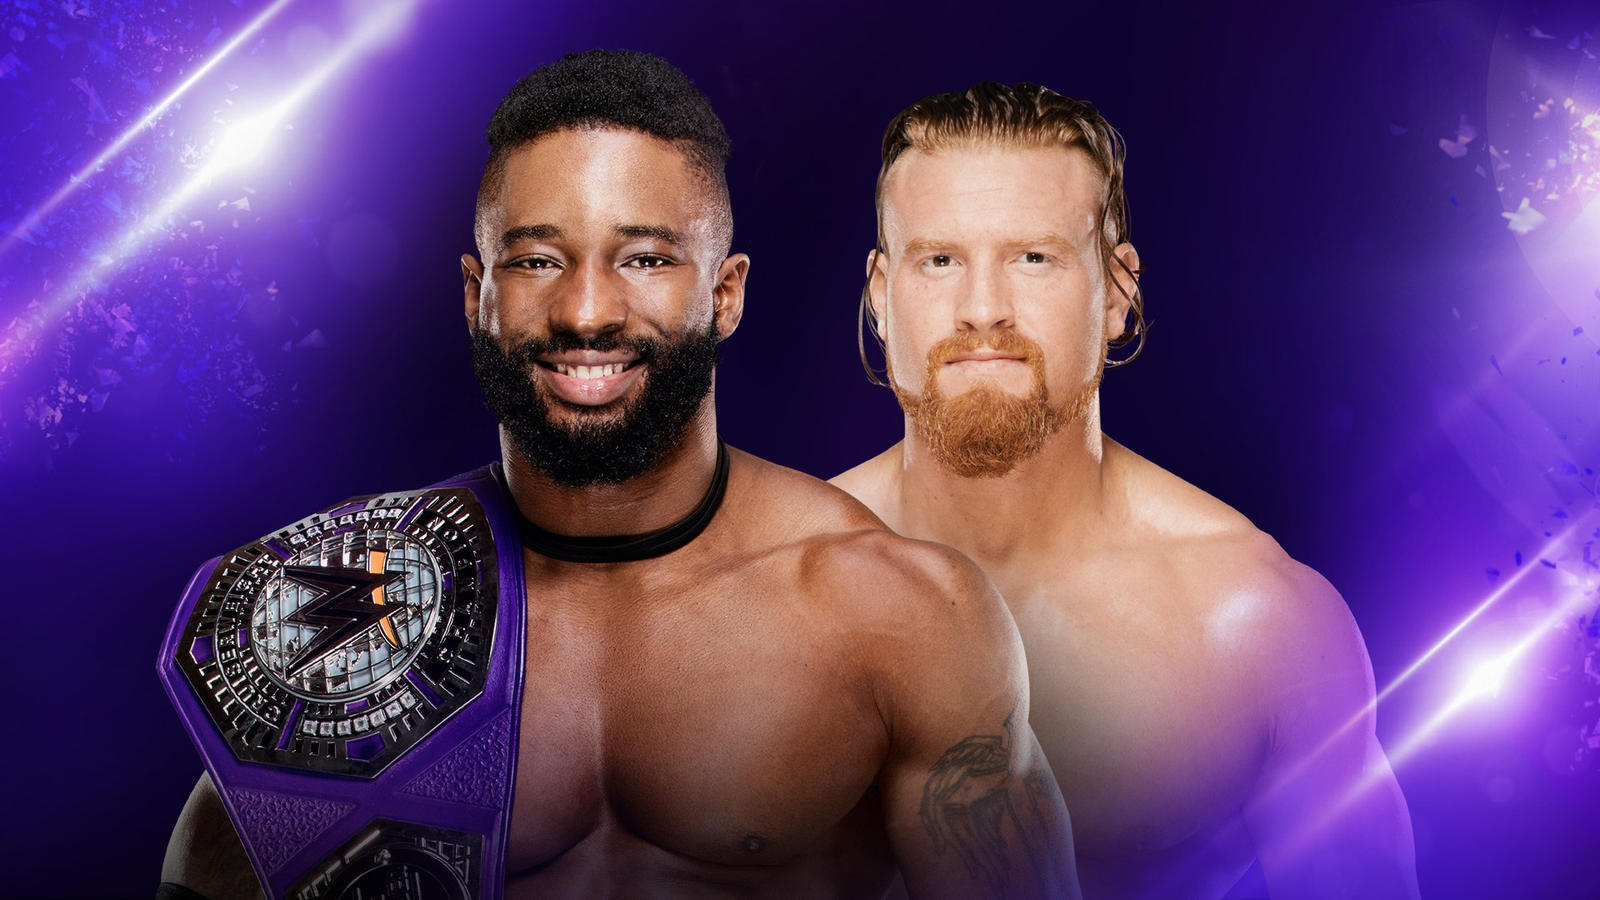 Who will leave tonight as Cruiserweight Champion?